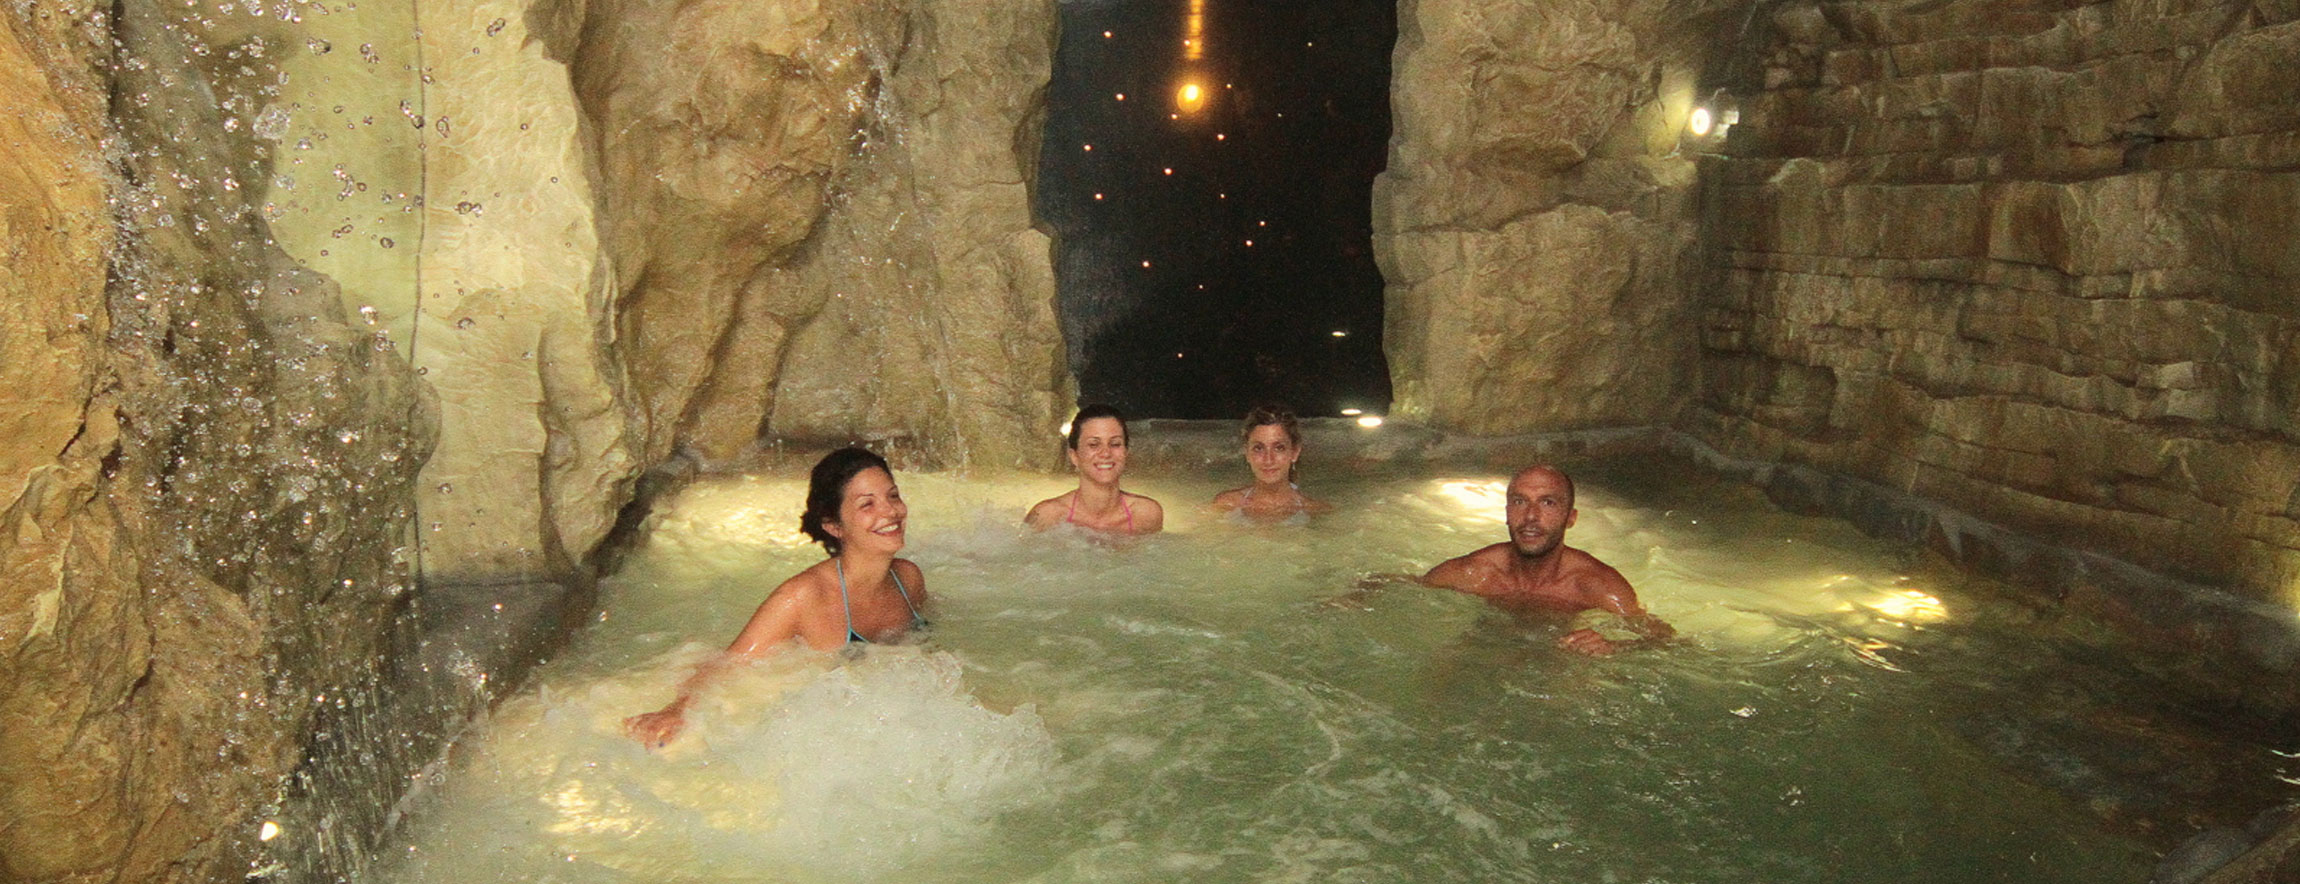 Hot Springs in the nearby, Spa, Bagno Vignoni thermal baths, Bagni ...